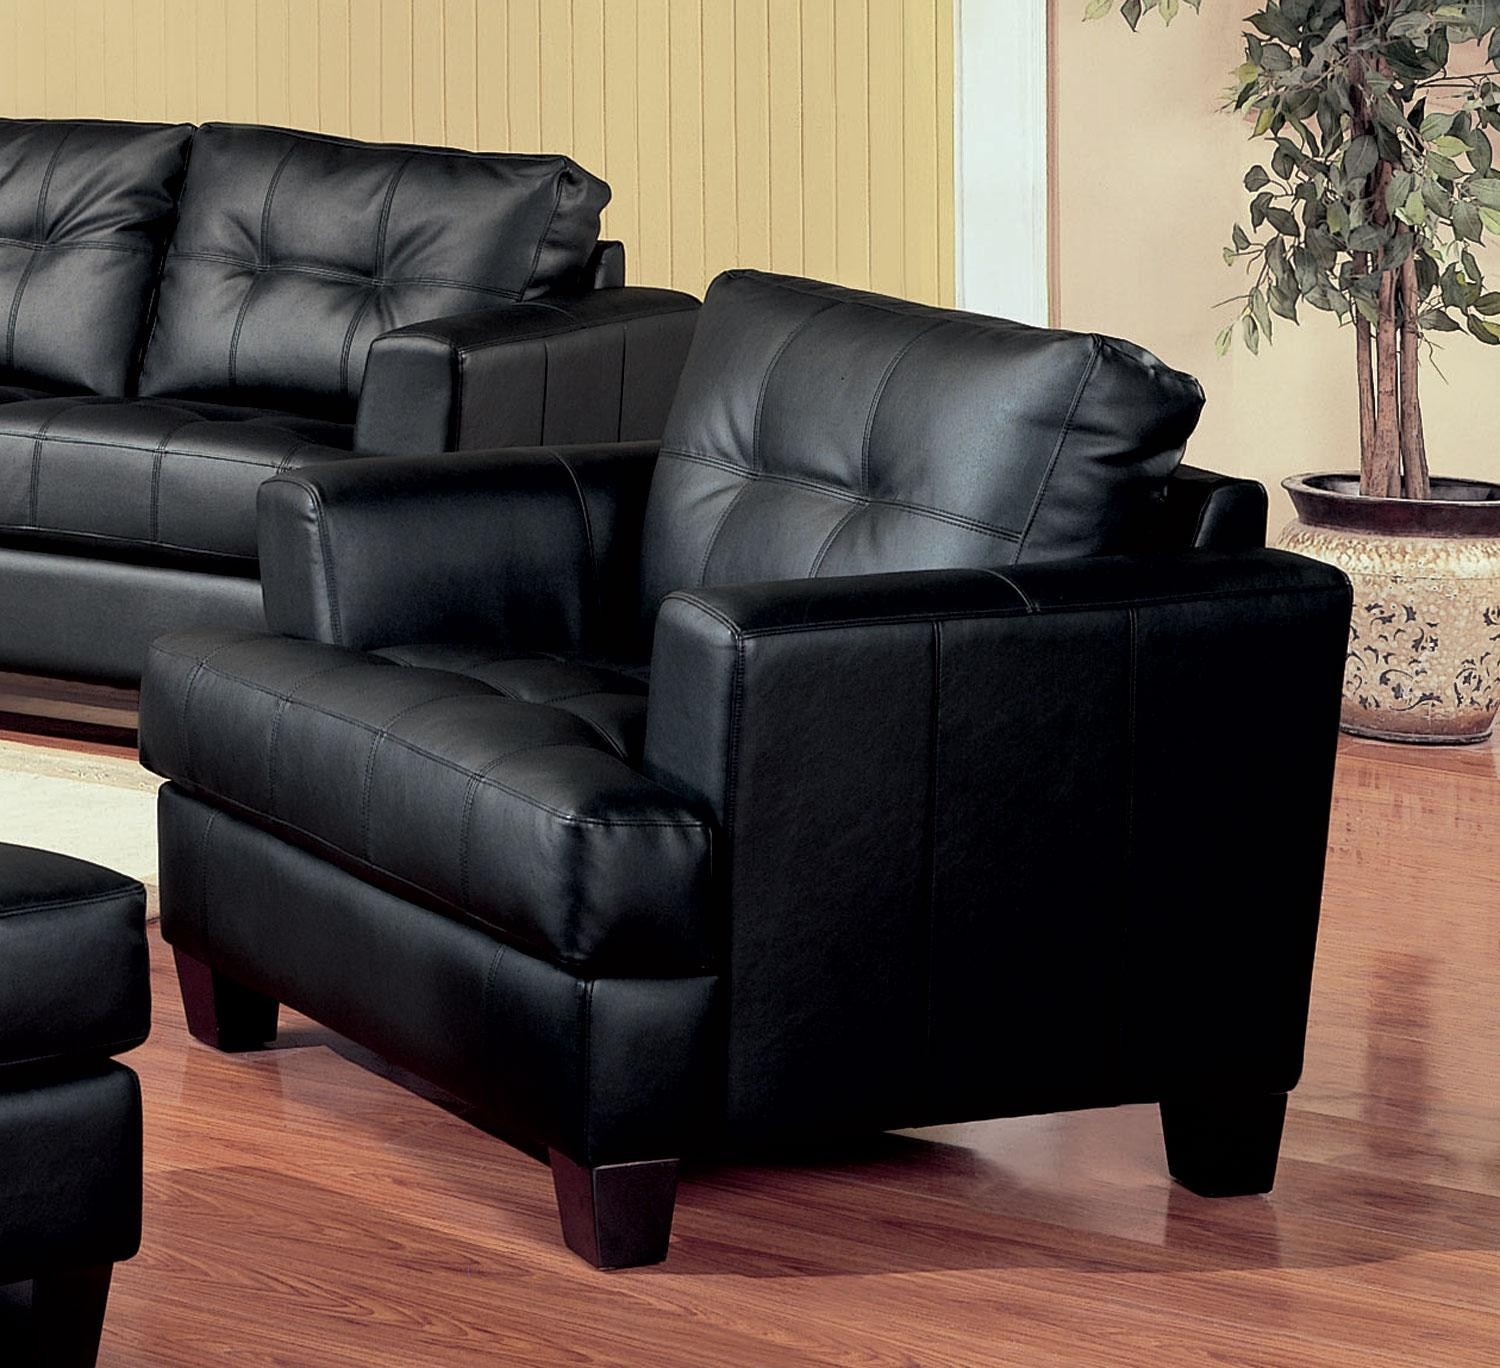 Black Living Room Chair Samuel Black Leather Living Room Set 501681 From Coaster